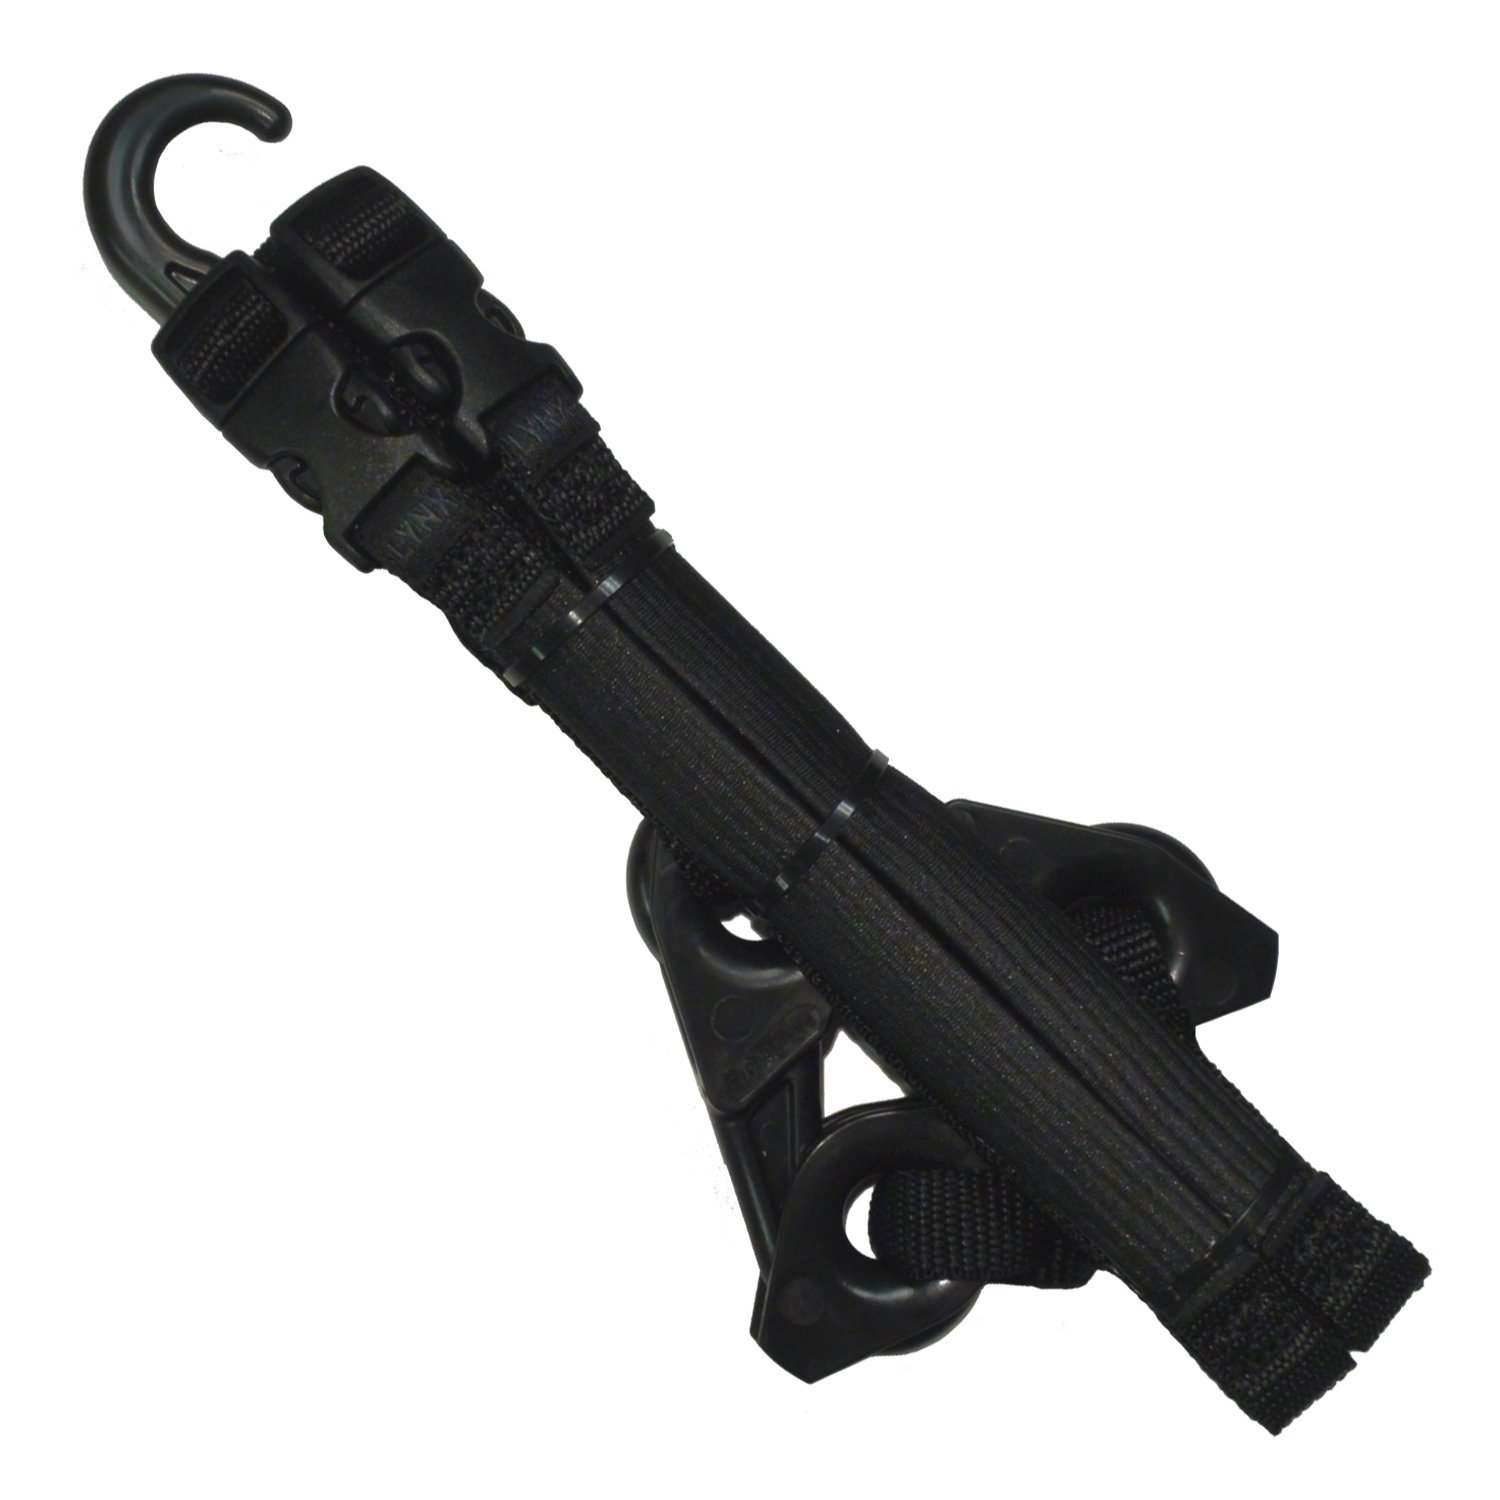 LYNX Hooks® Tactical Black Adjustable, Interlocking Gear Straps